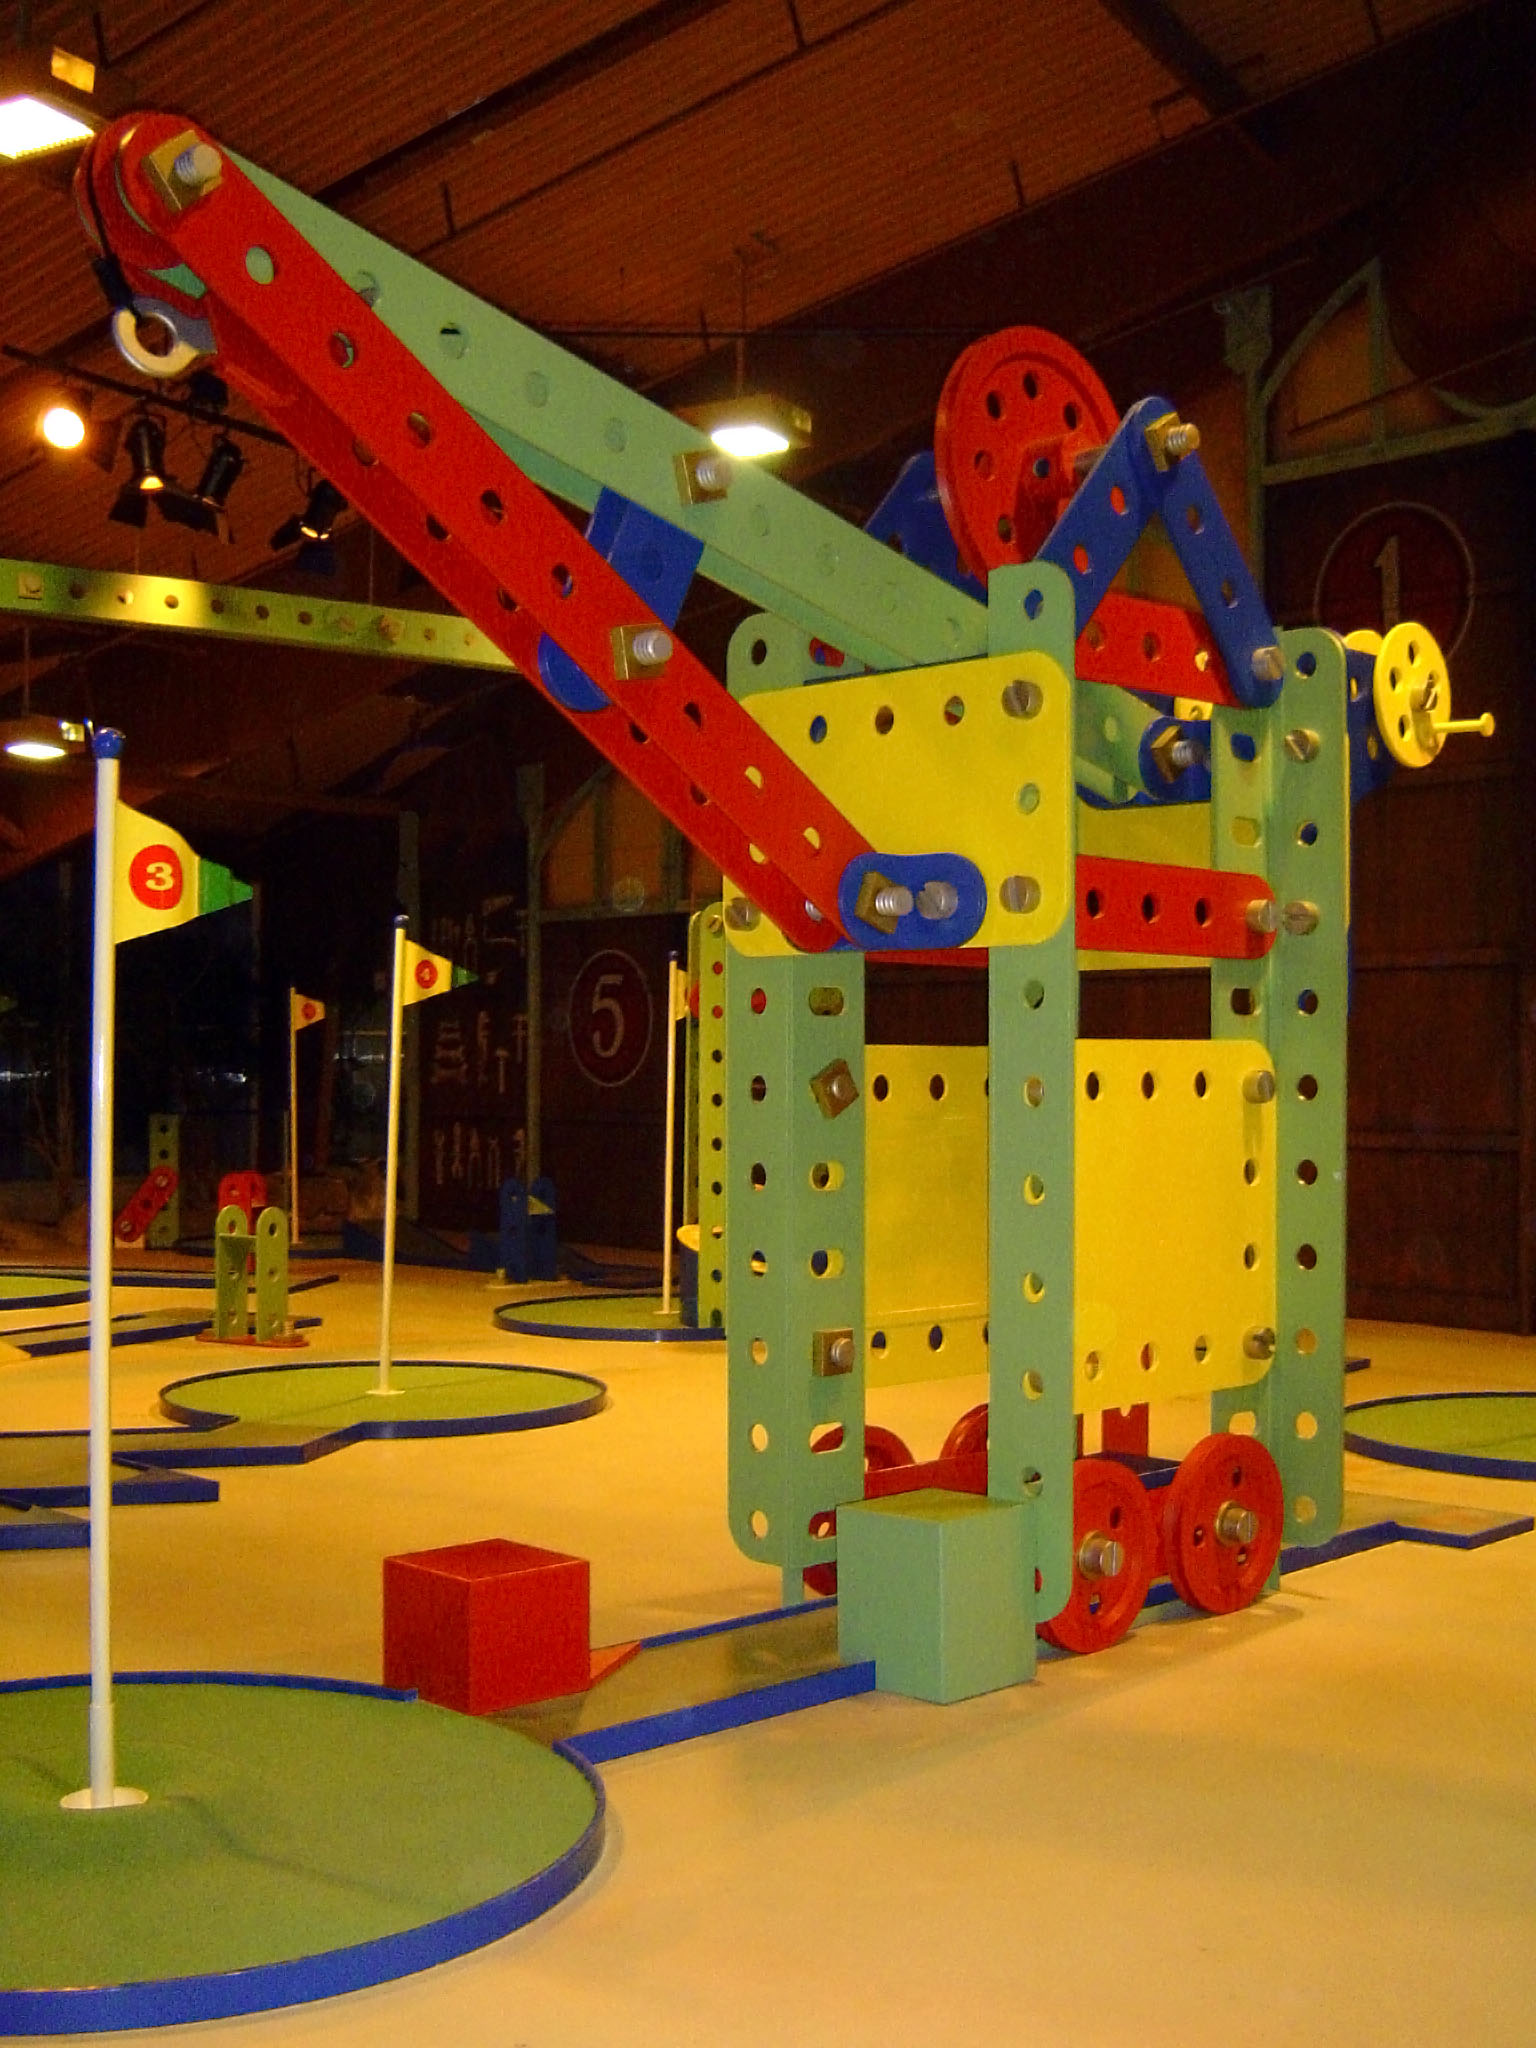 MECHANICAL MINIGOLF <strong>| A playful larger-than-life toy world</strong>